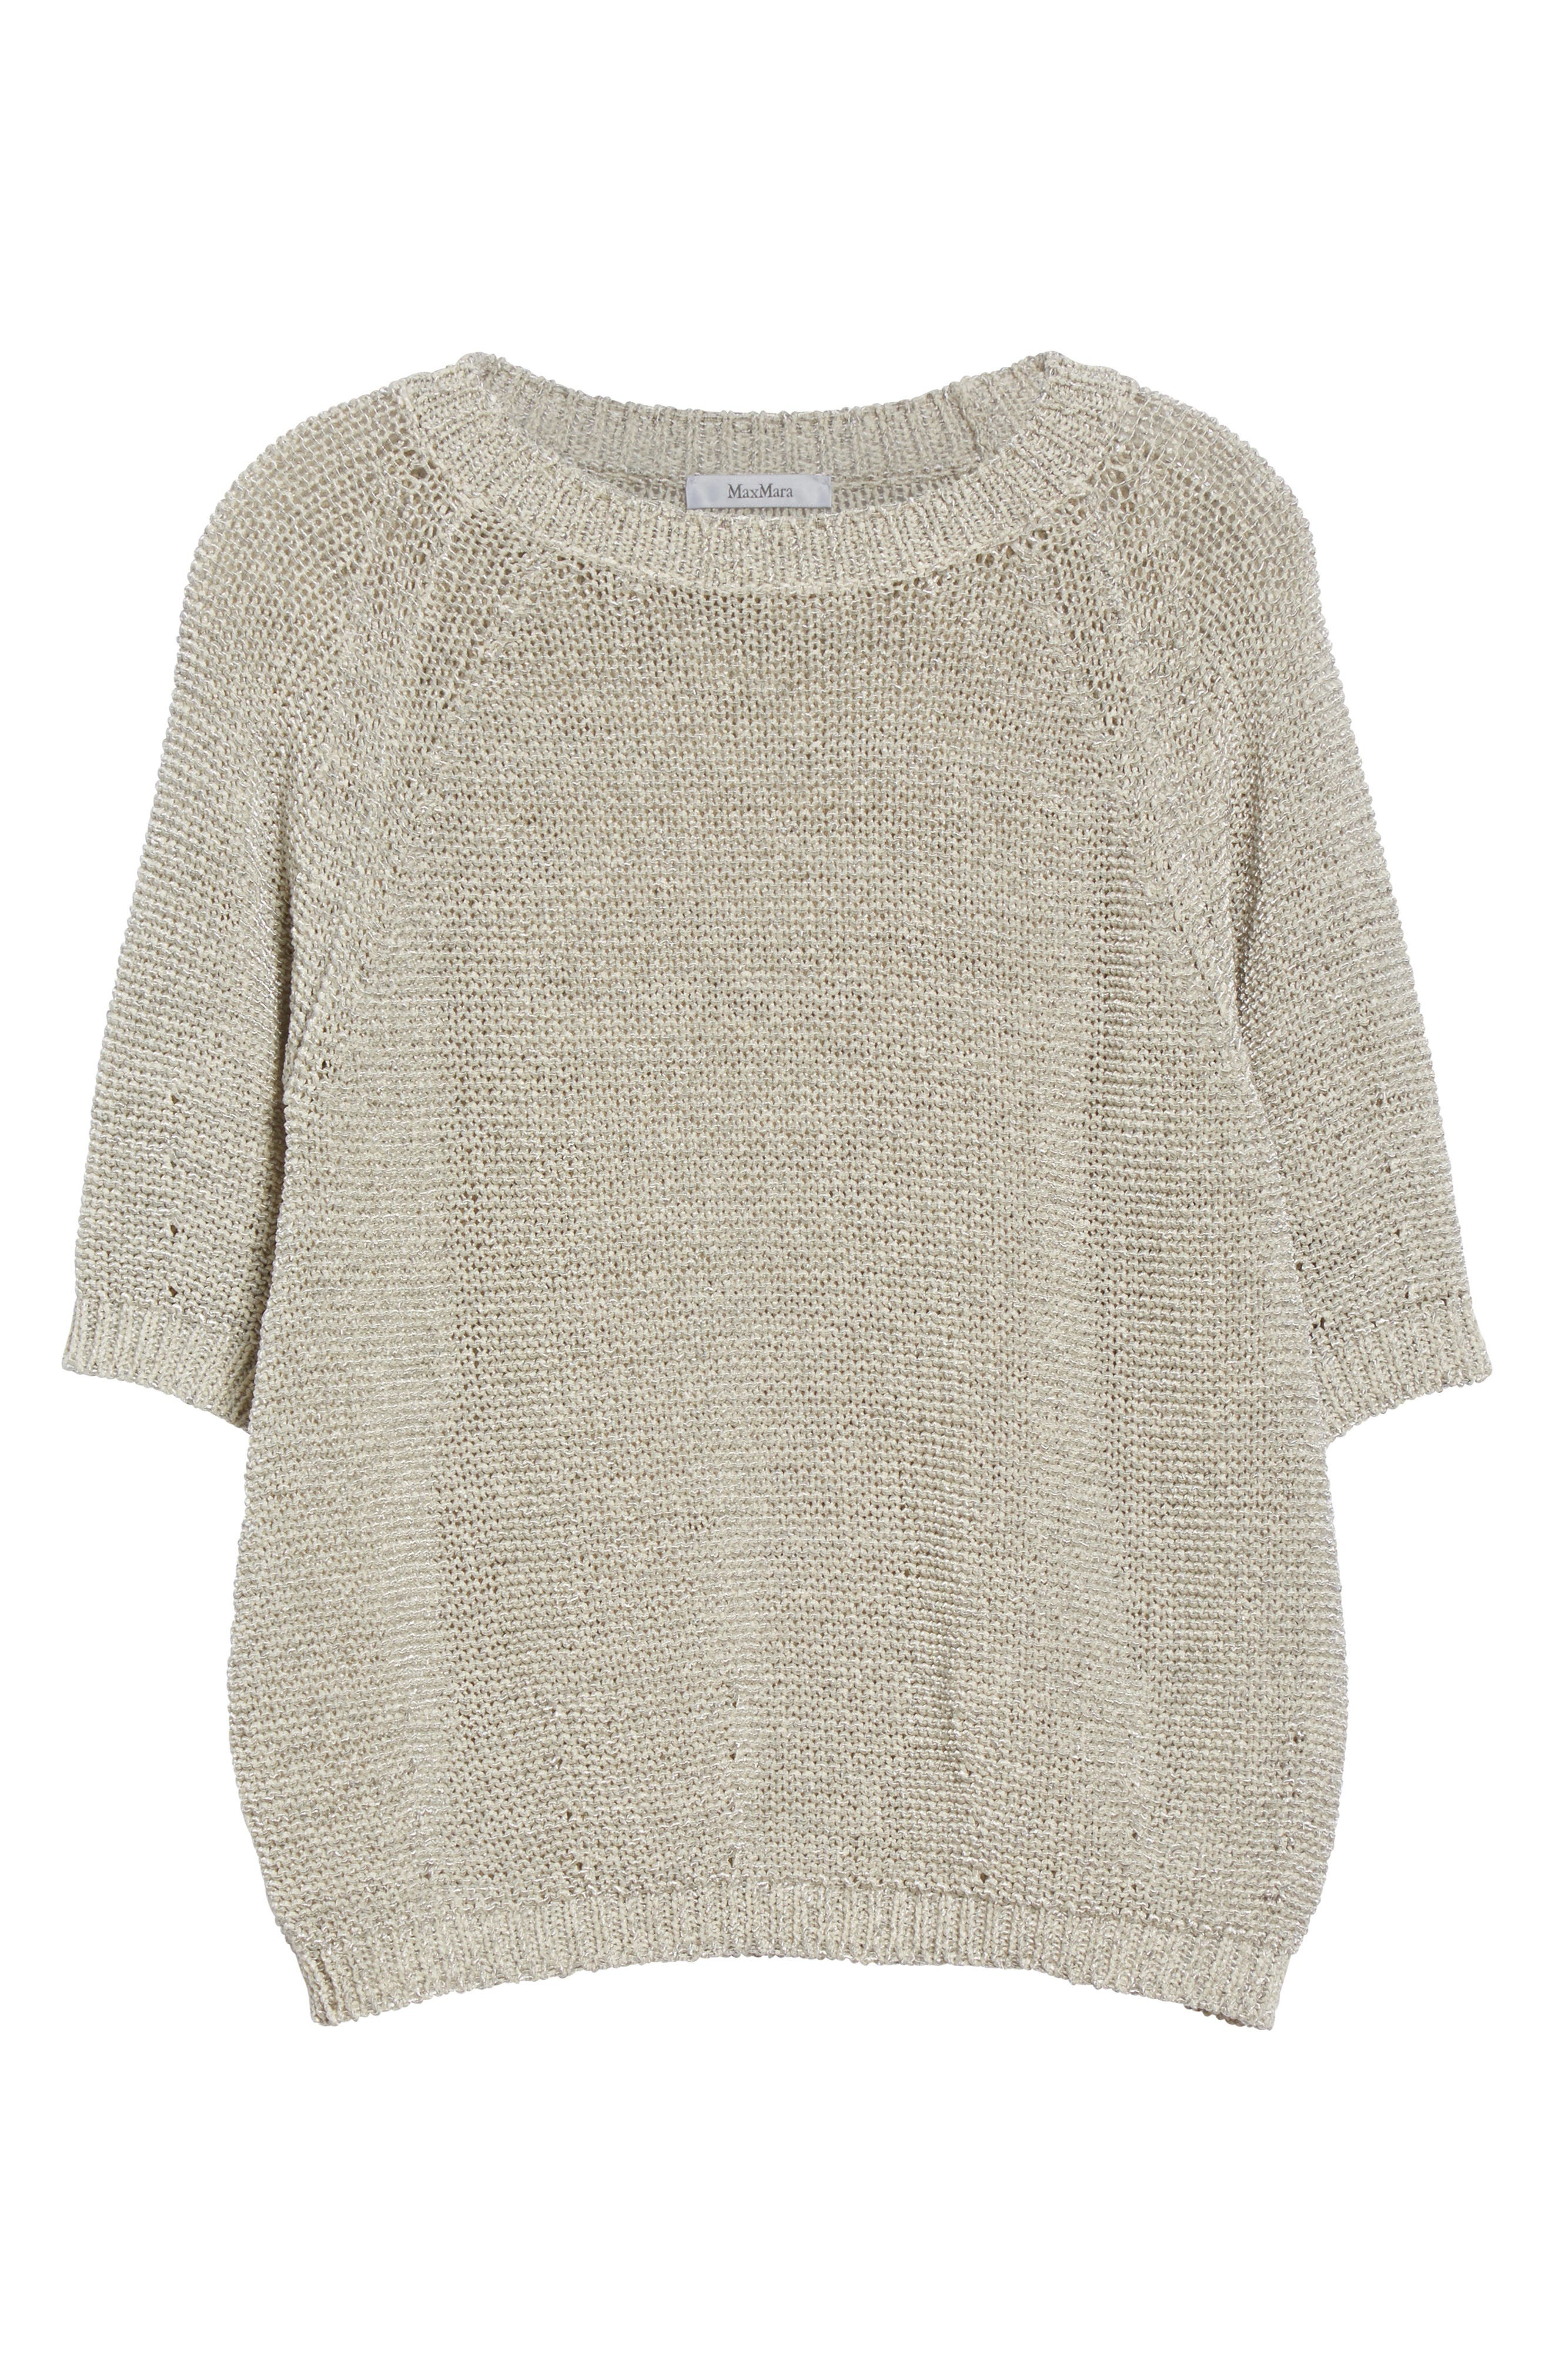 Alternate Image 4  - Max Mara Cotton Blend Sweater